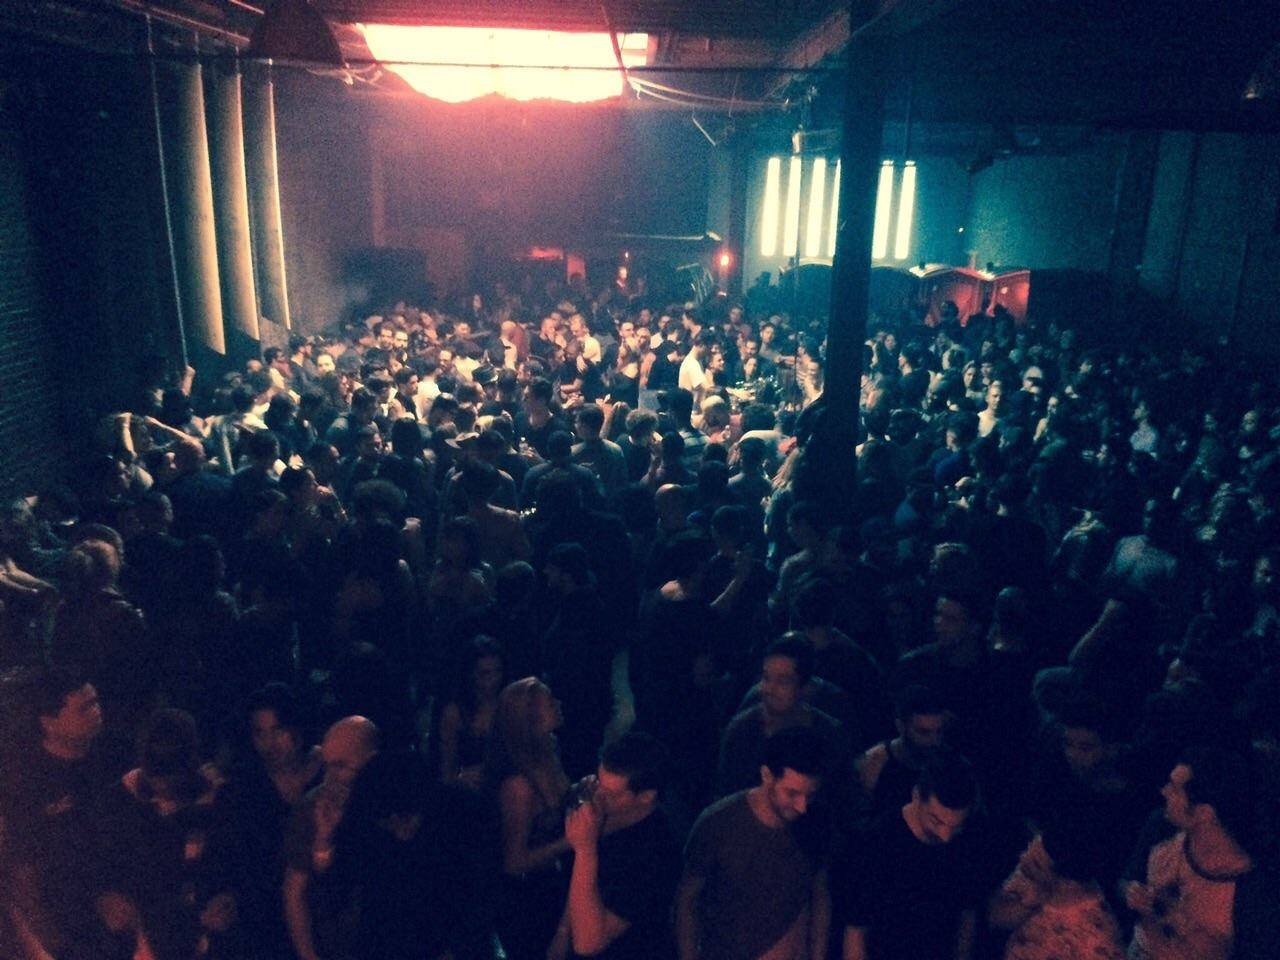 aerial shot of room filled with people